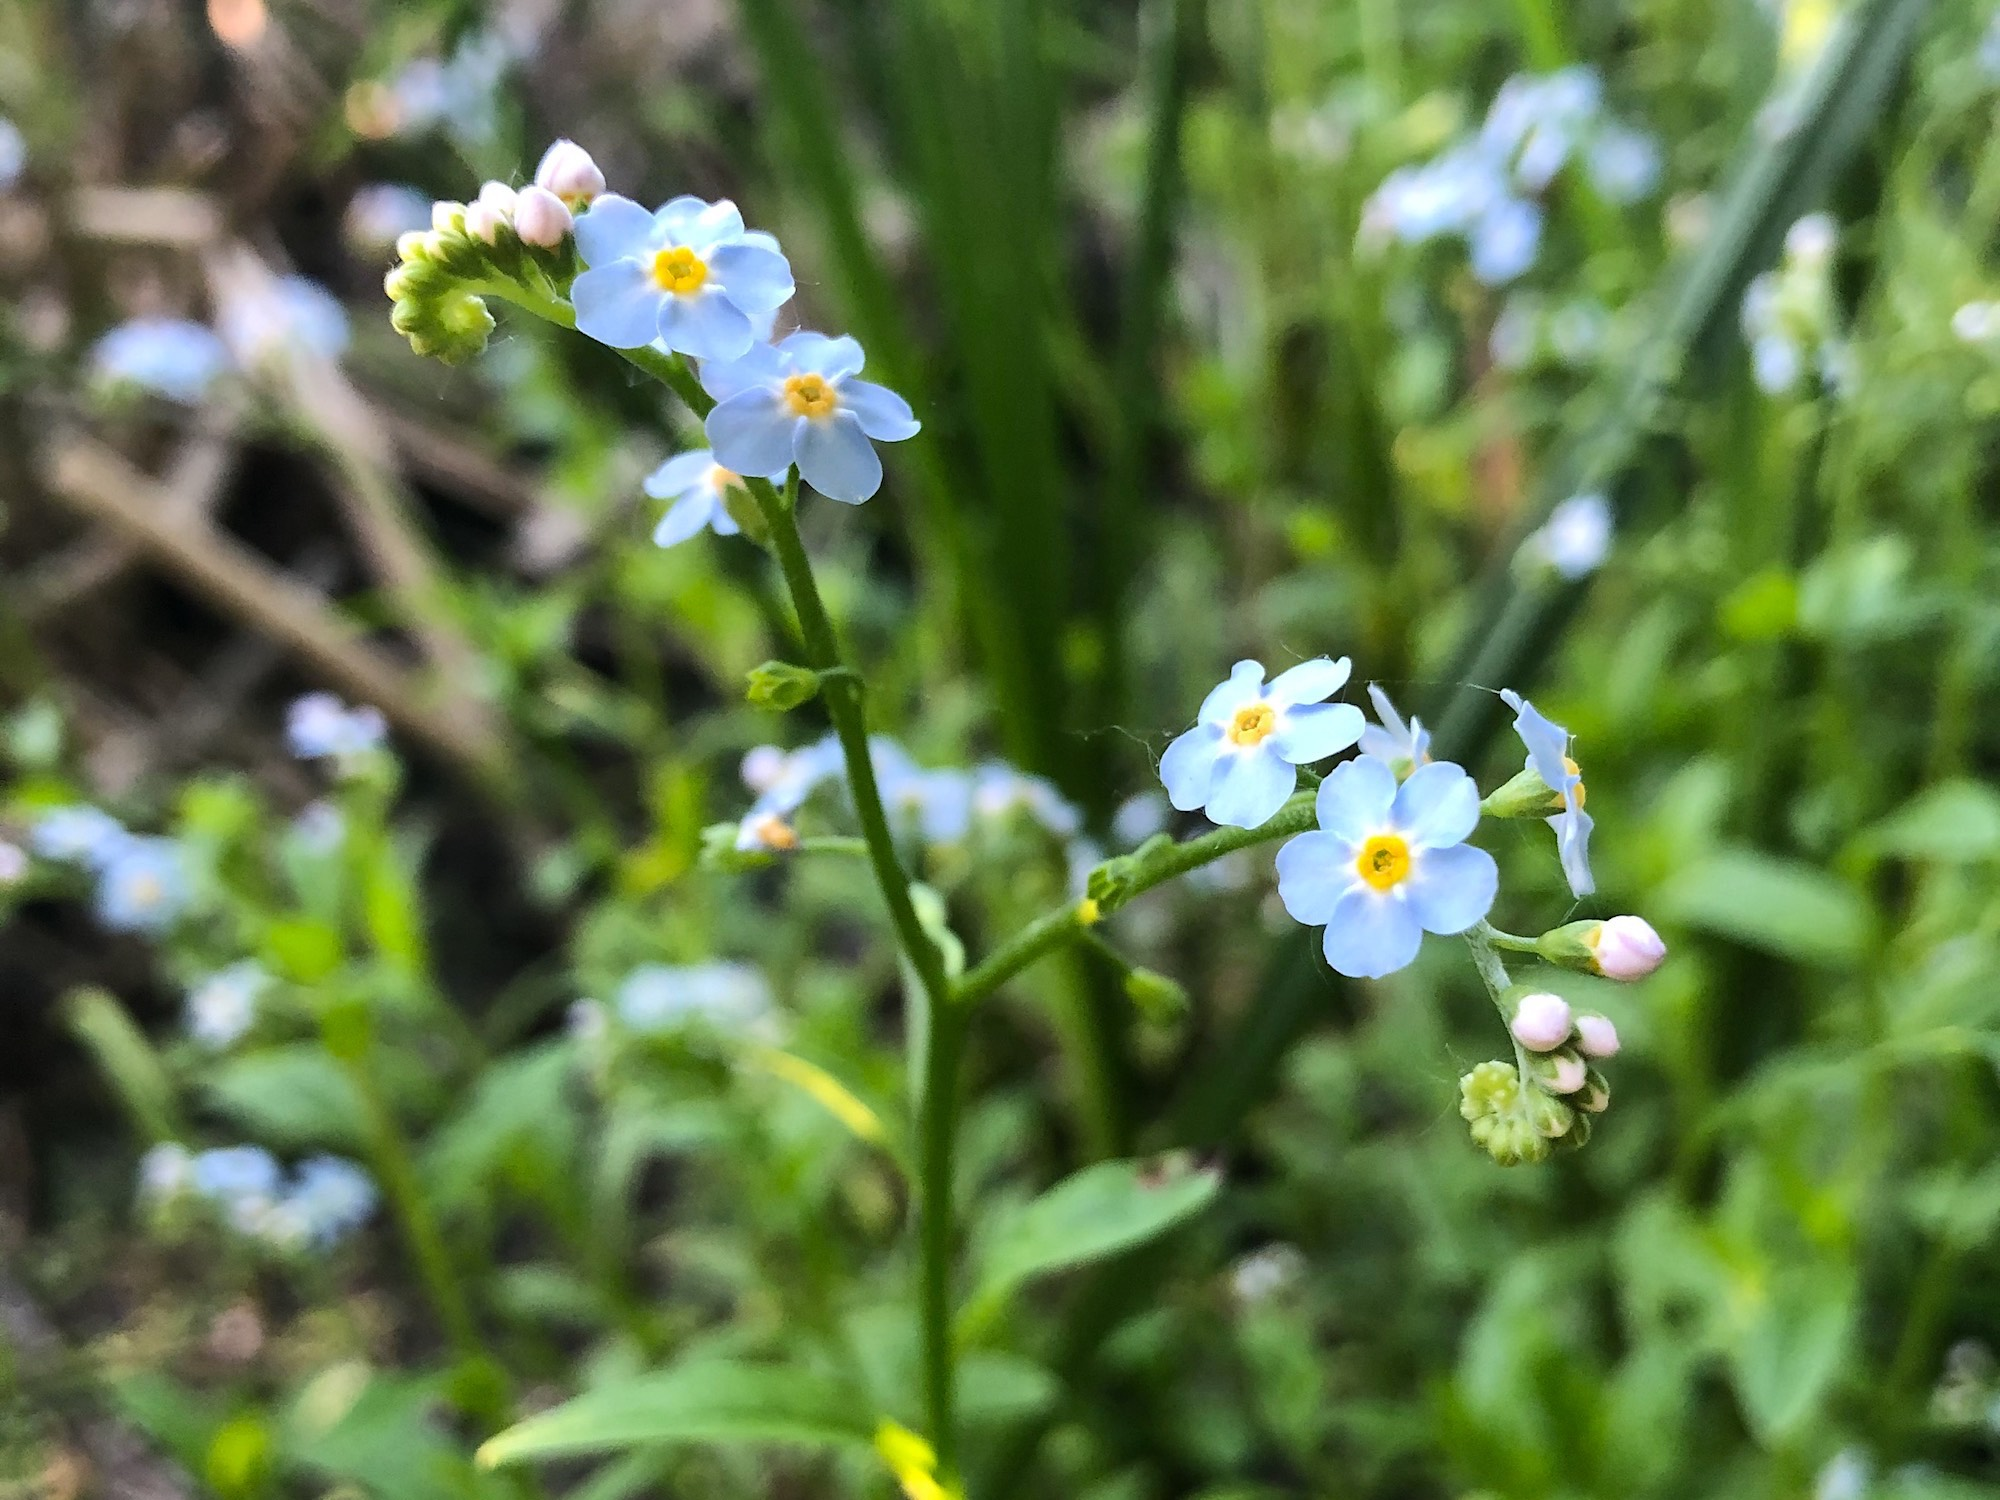 True Forget-me-not or Water Forget-me-not.